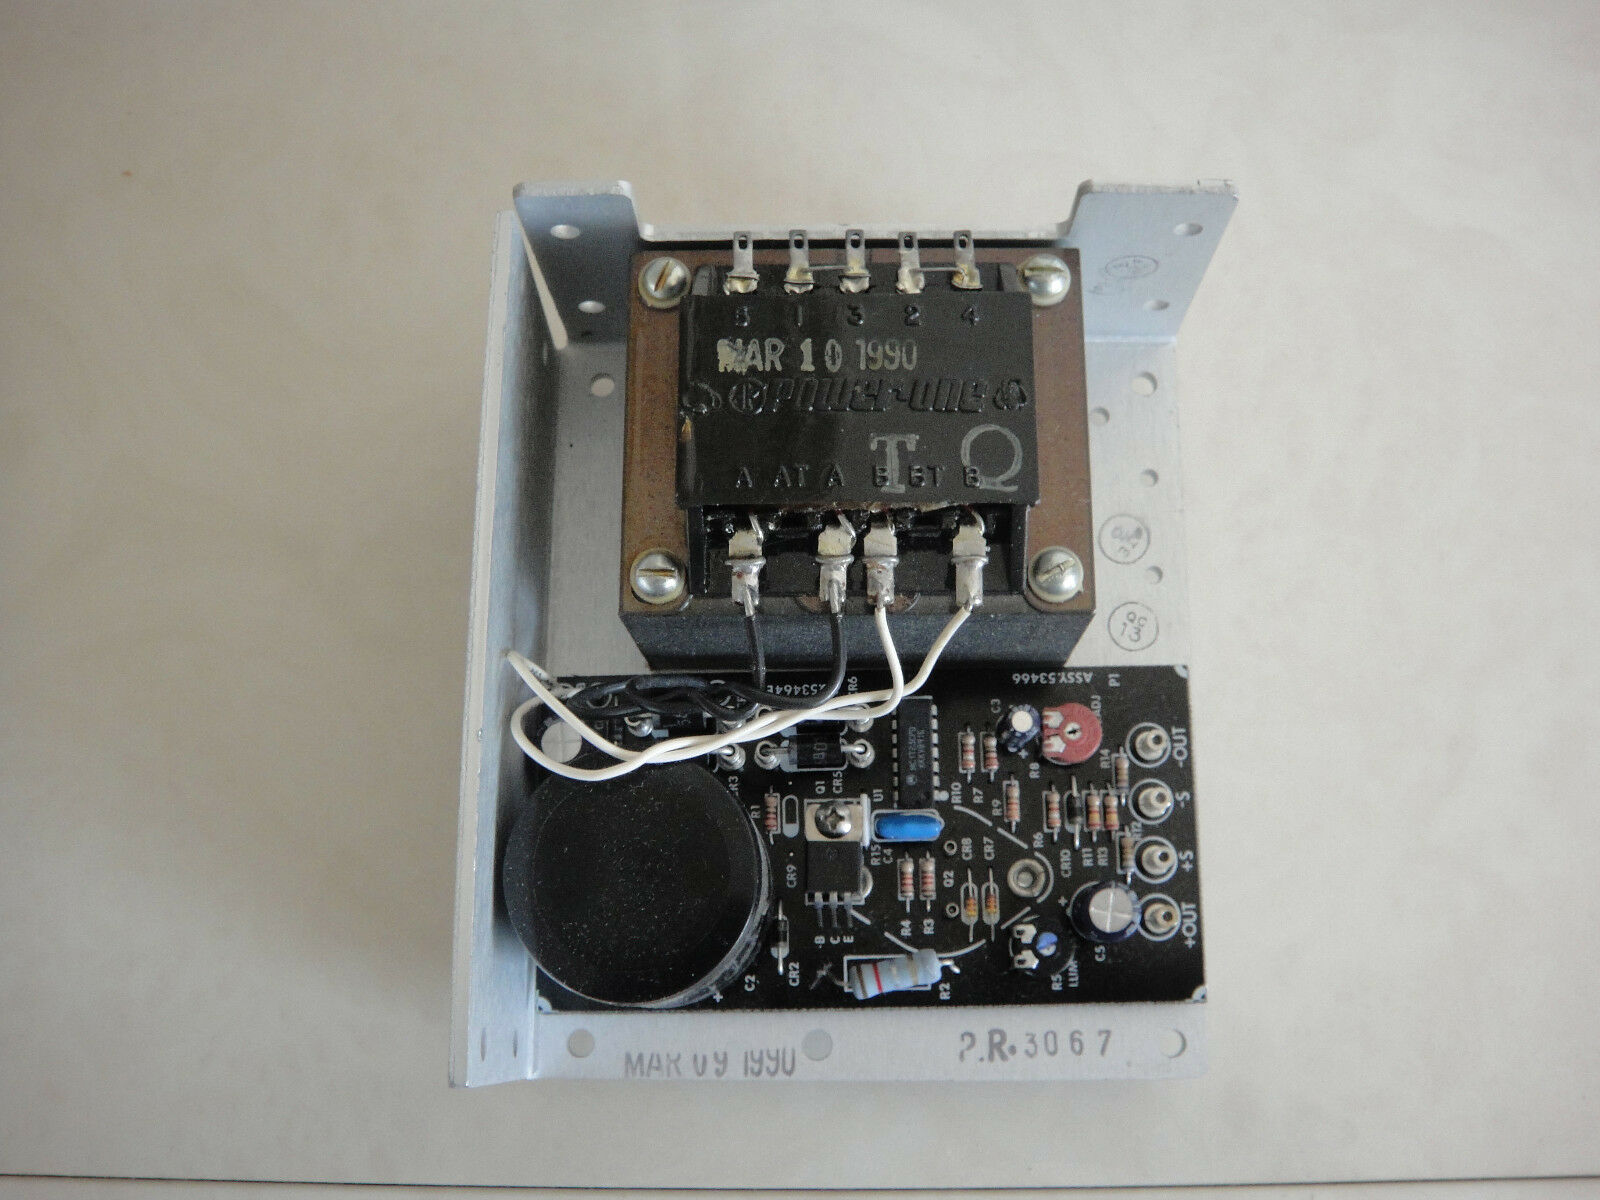 PS New HC15-3-A Power-One Int/'l Open Frame Linear Power Supply 15VDC 3.0A